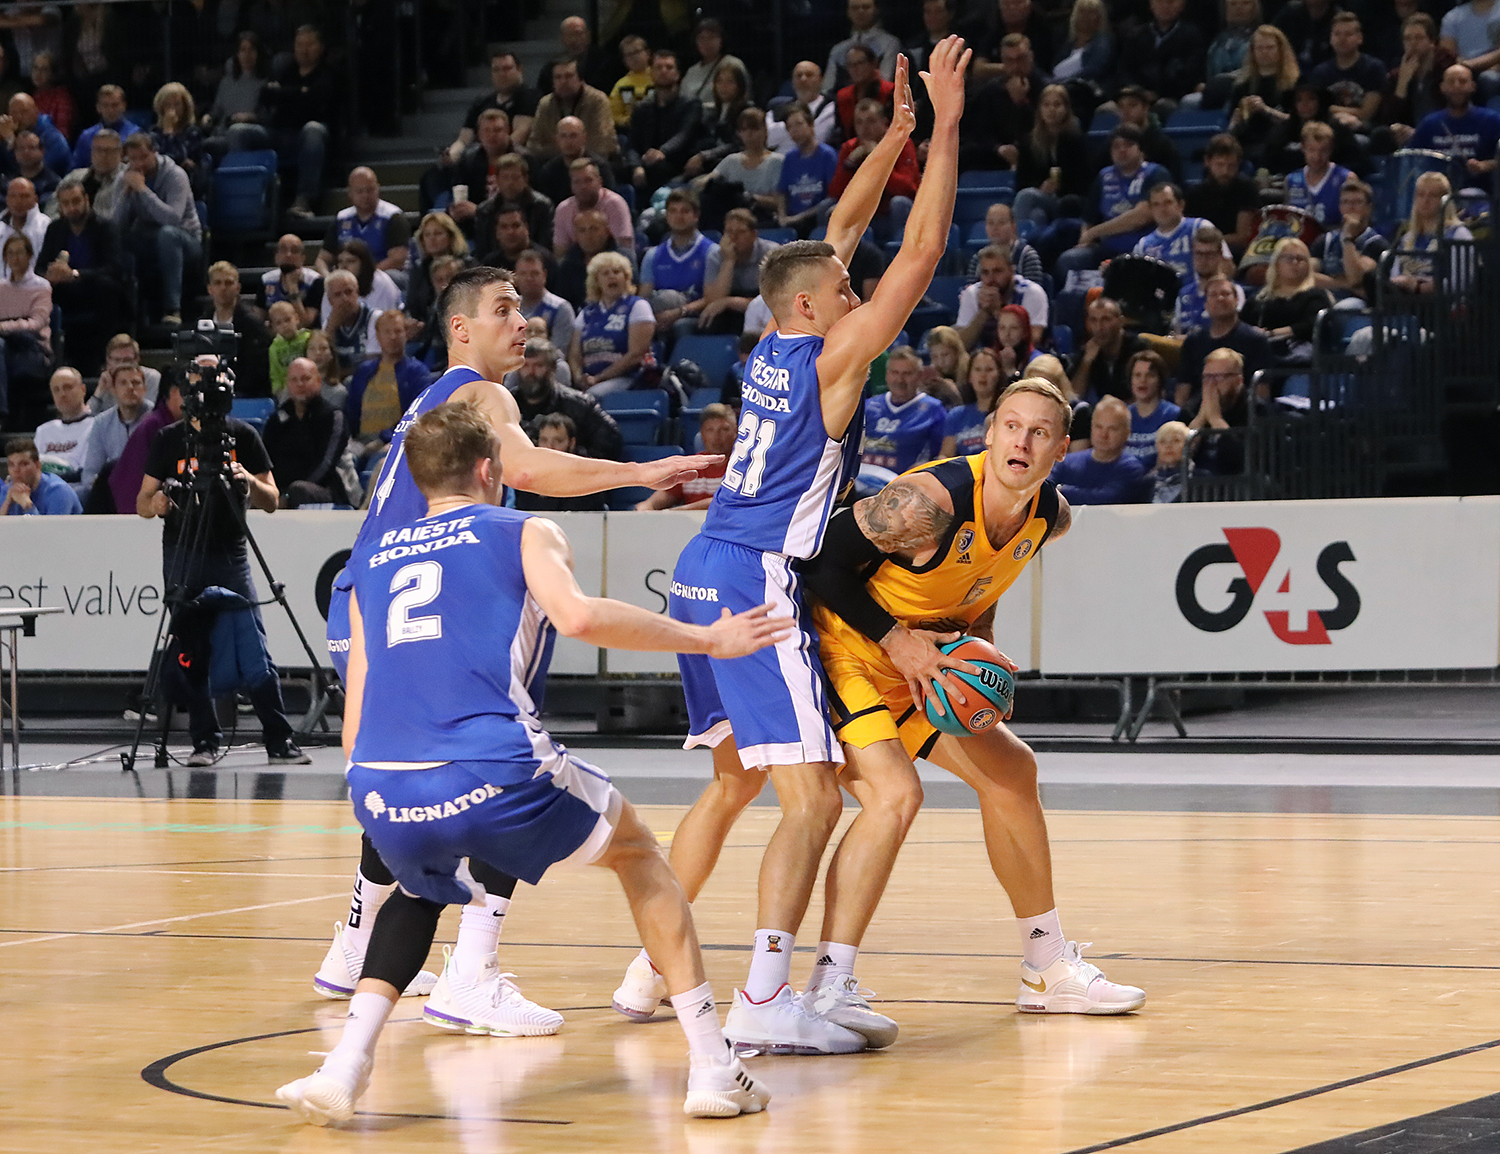 Khimki keeps rolling in Tallinn